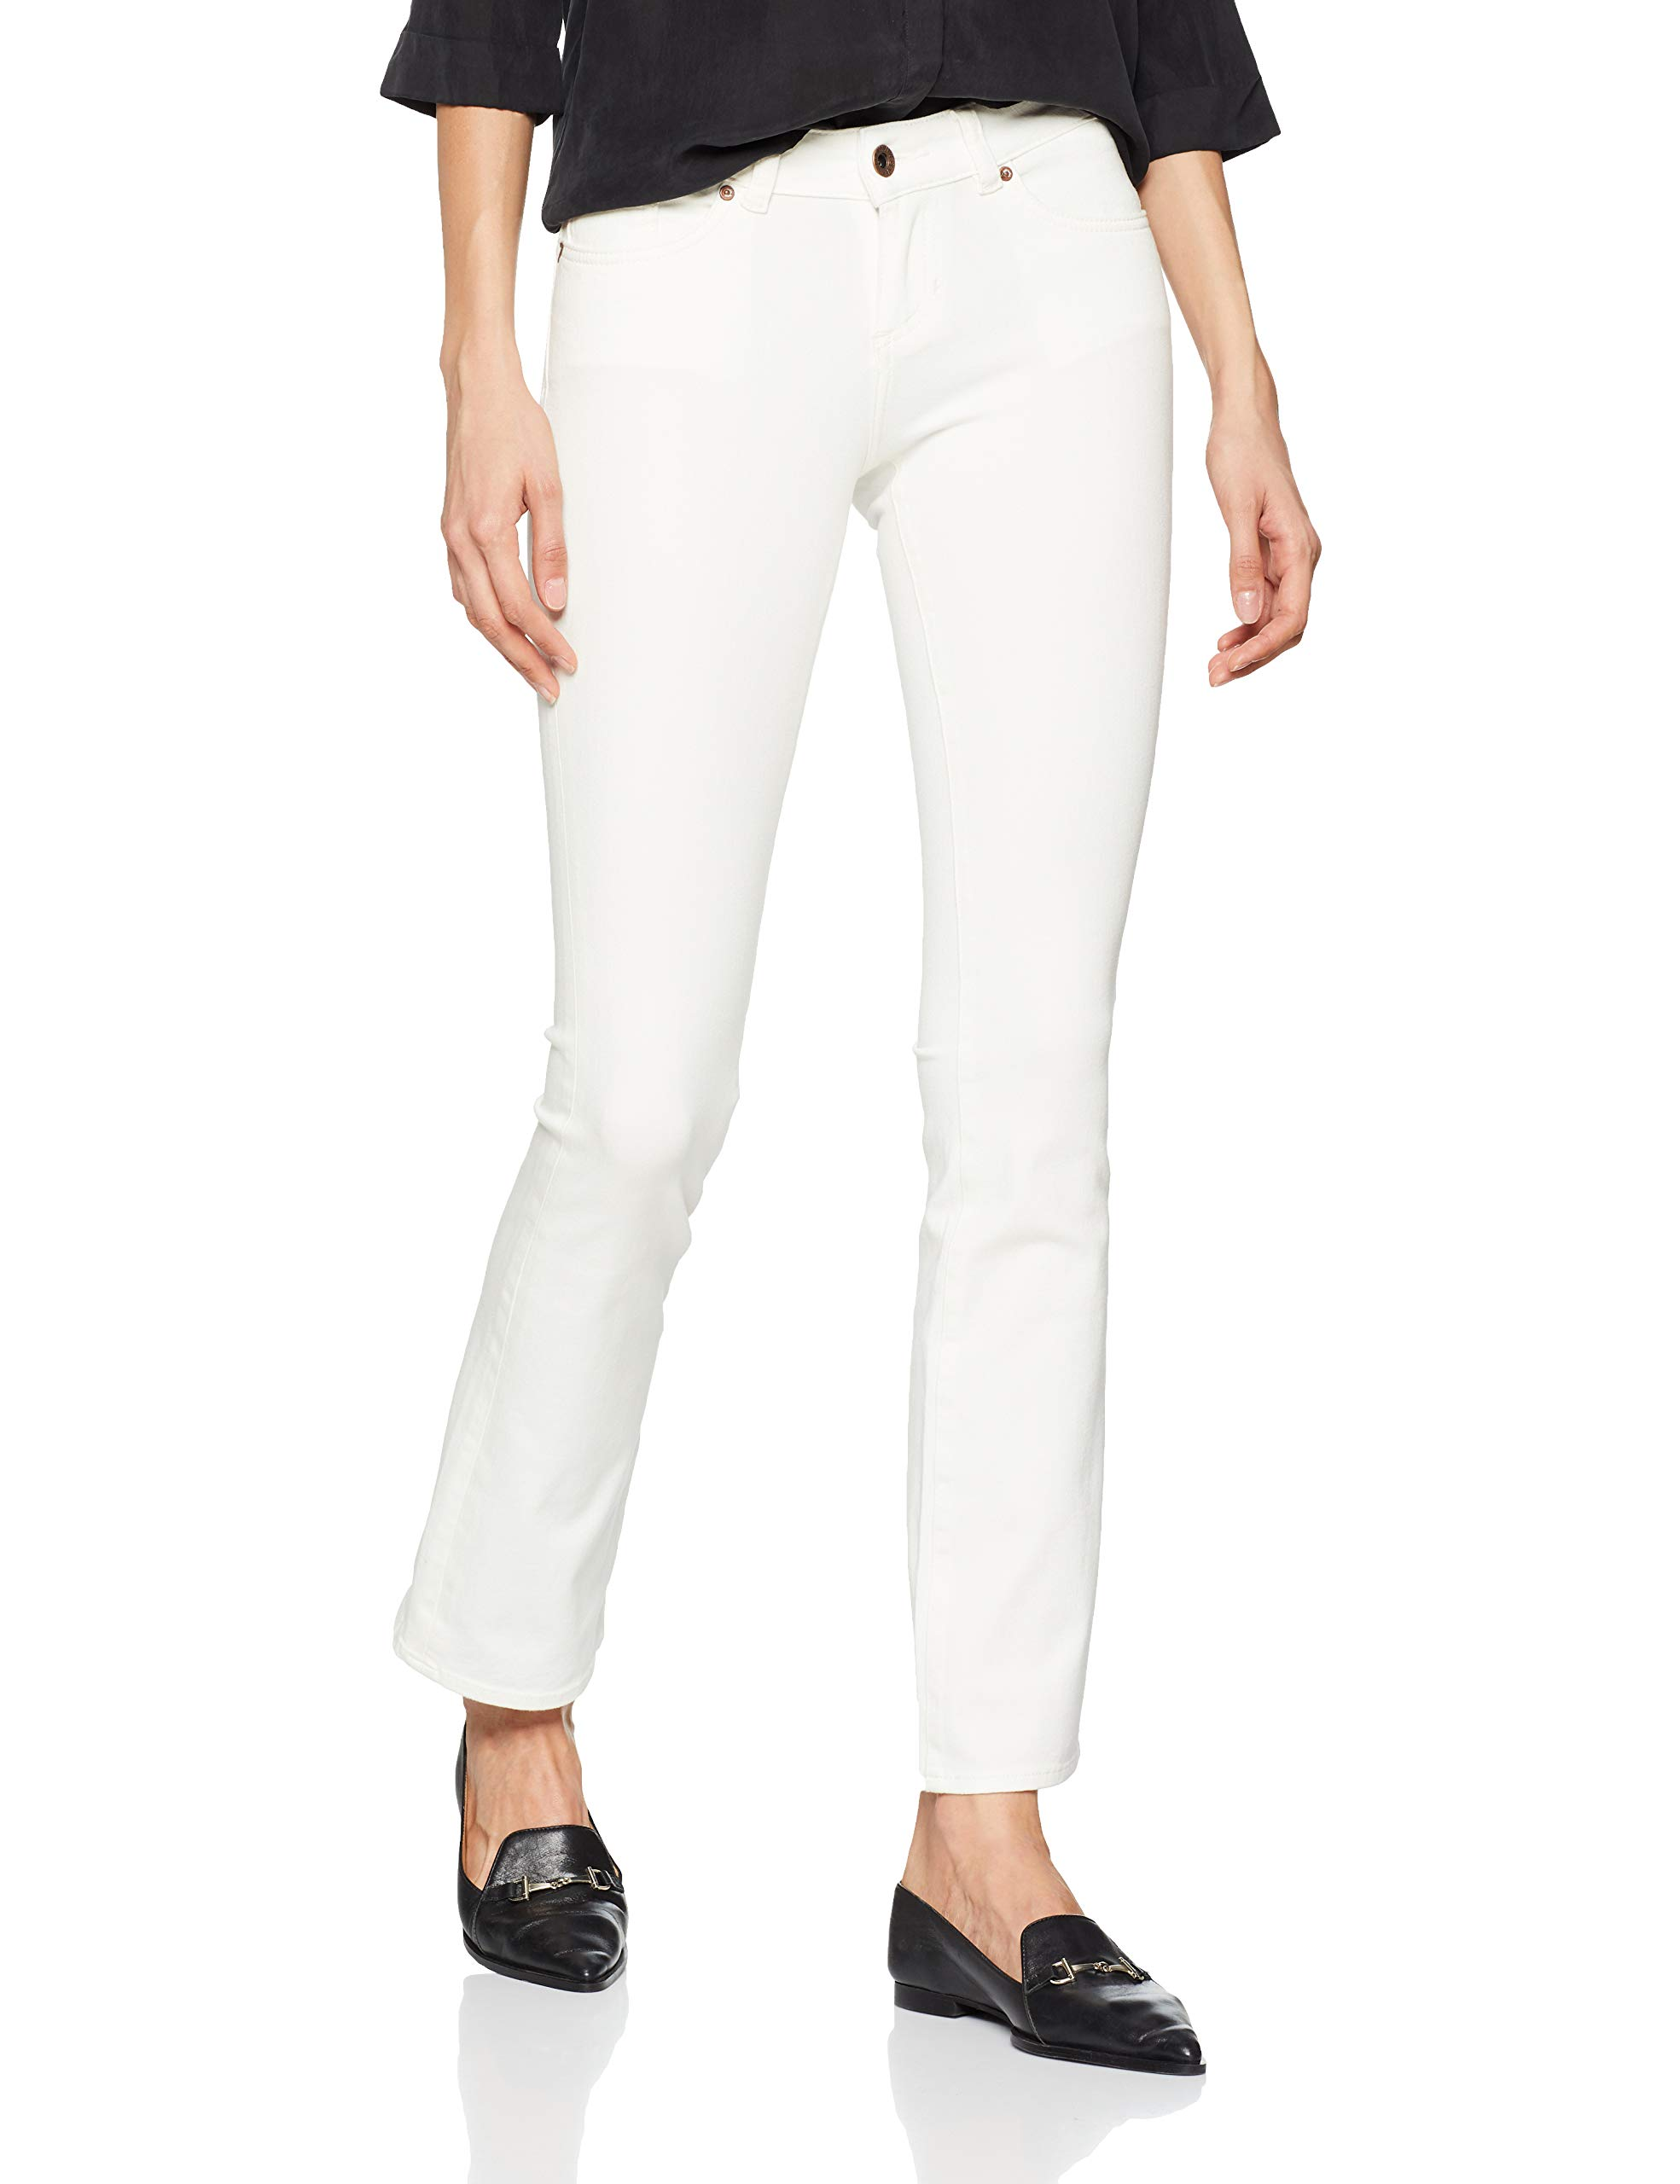 Seven7 Fabricant30 Jean 32Femme Wt BootcutBlancrinse 00244taille Monica yYgv76fb